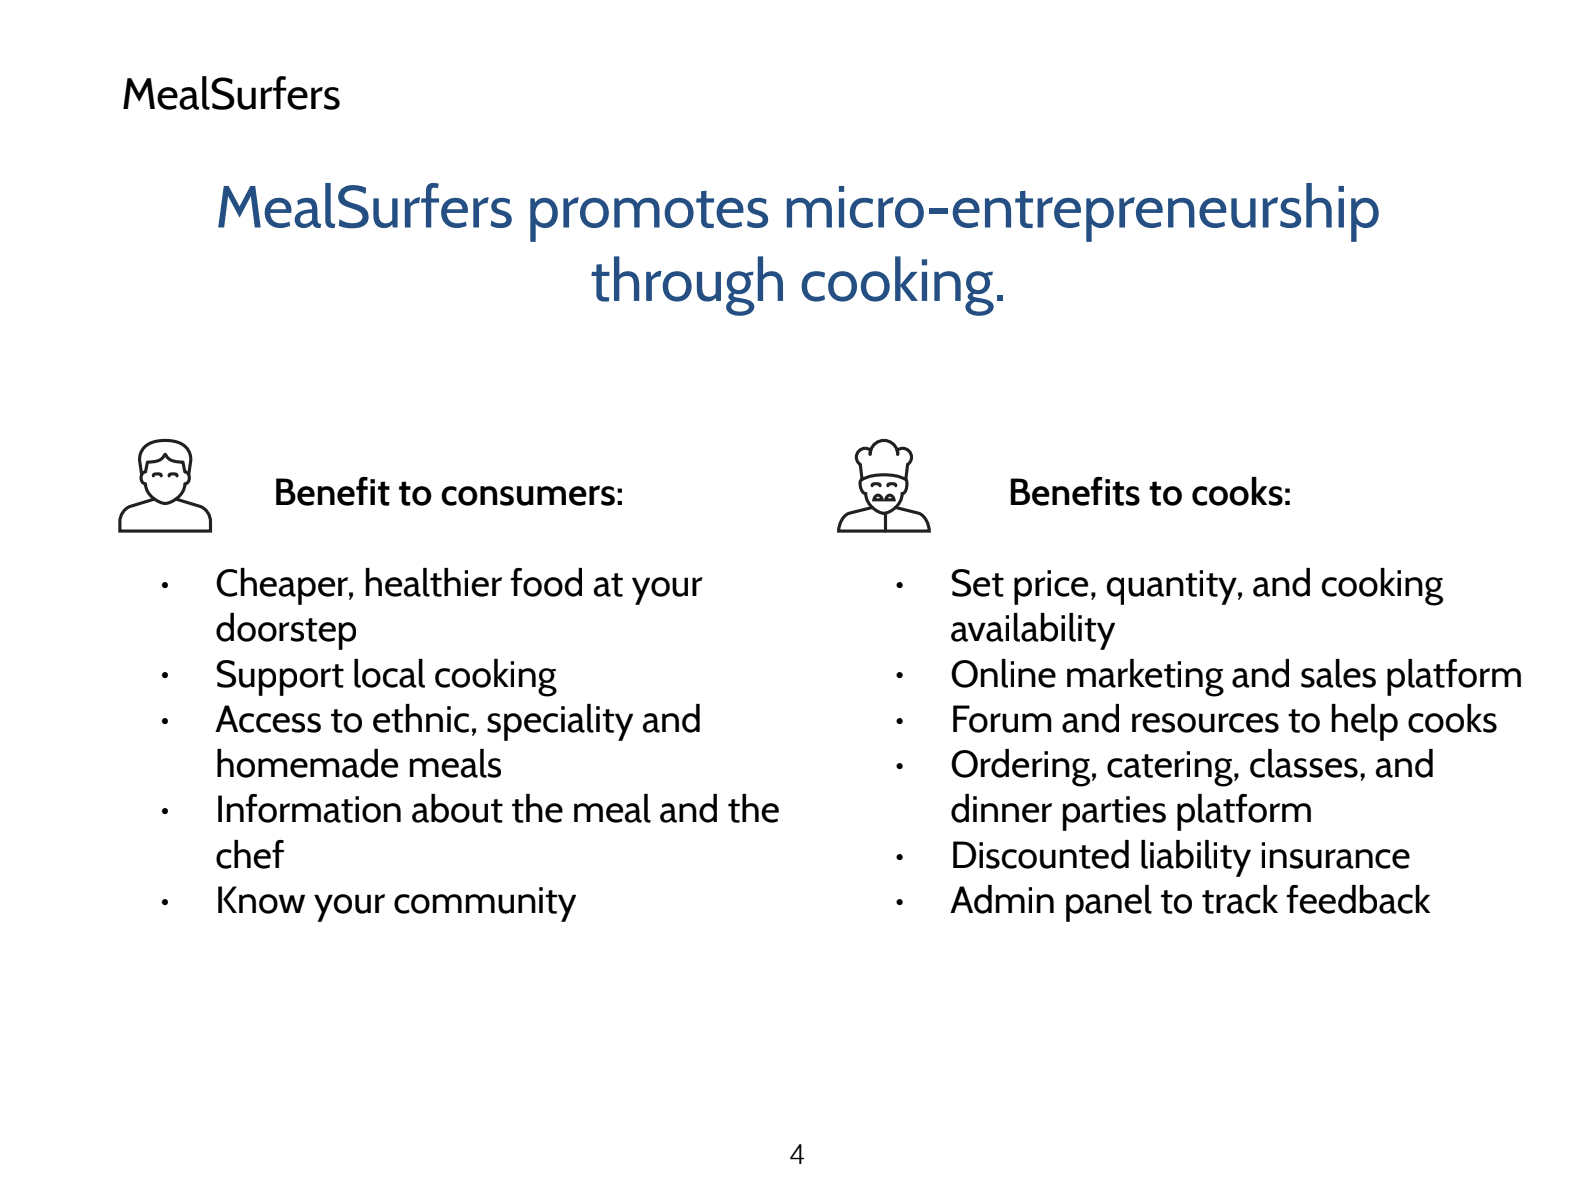 MealSurfer's Benefits